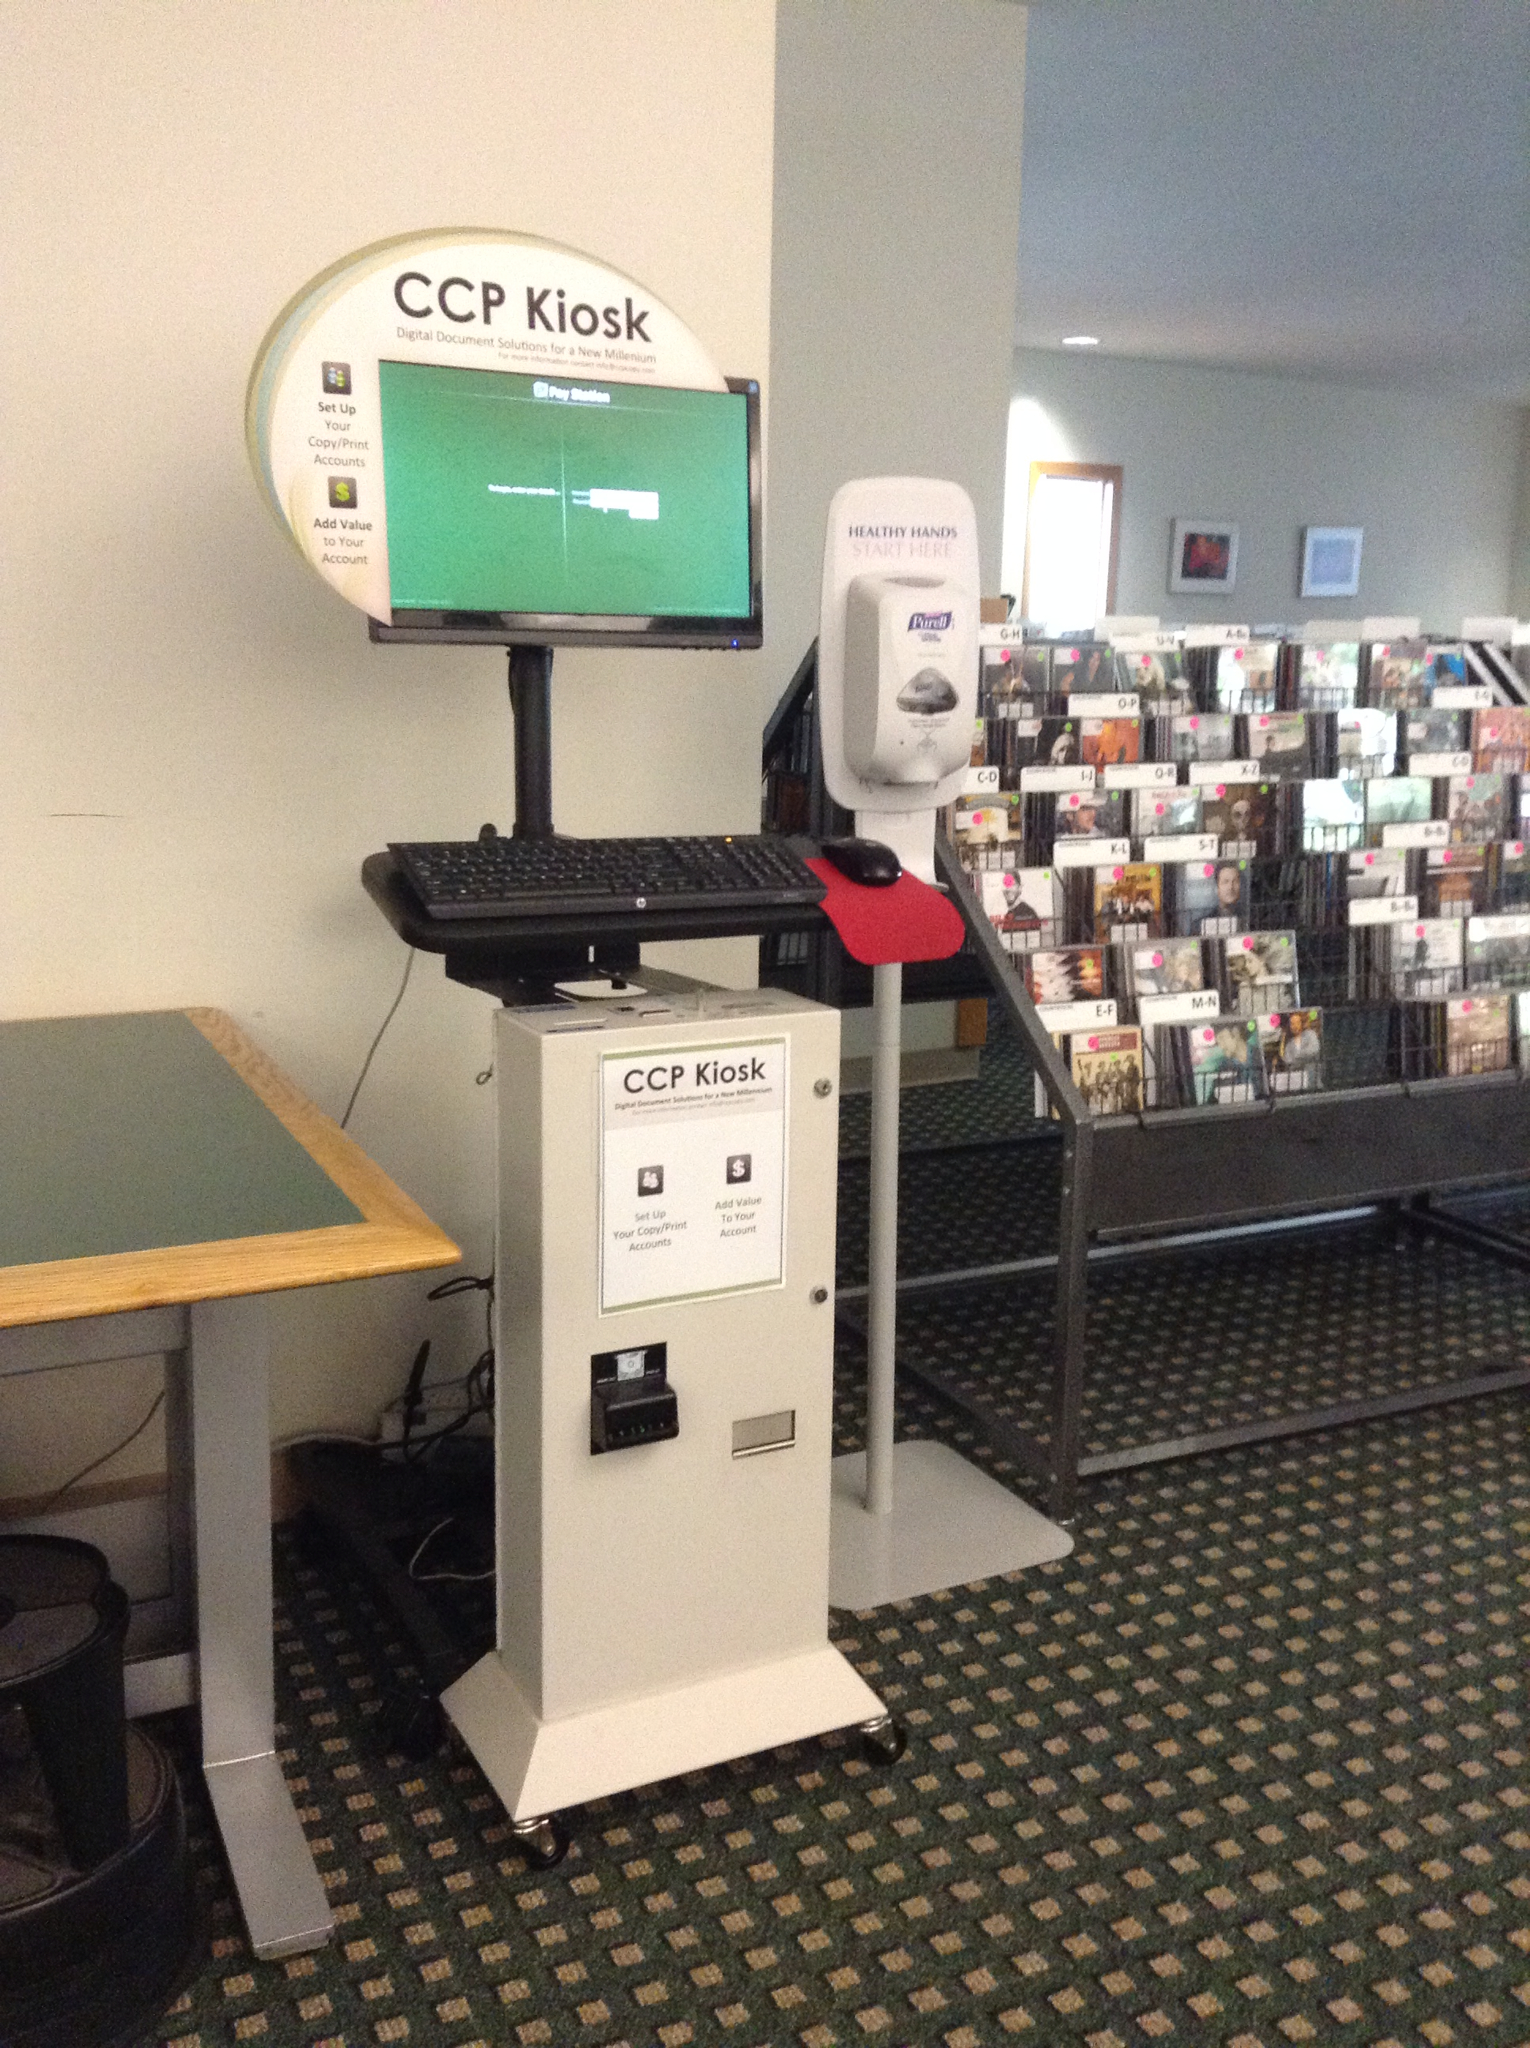 CCP Kiosk - add money to your print account